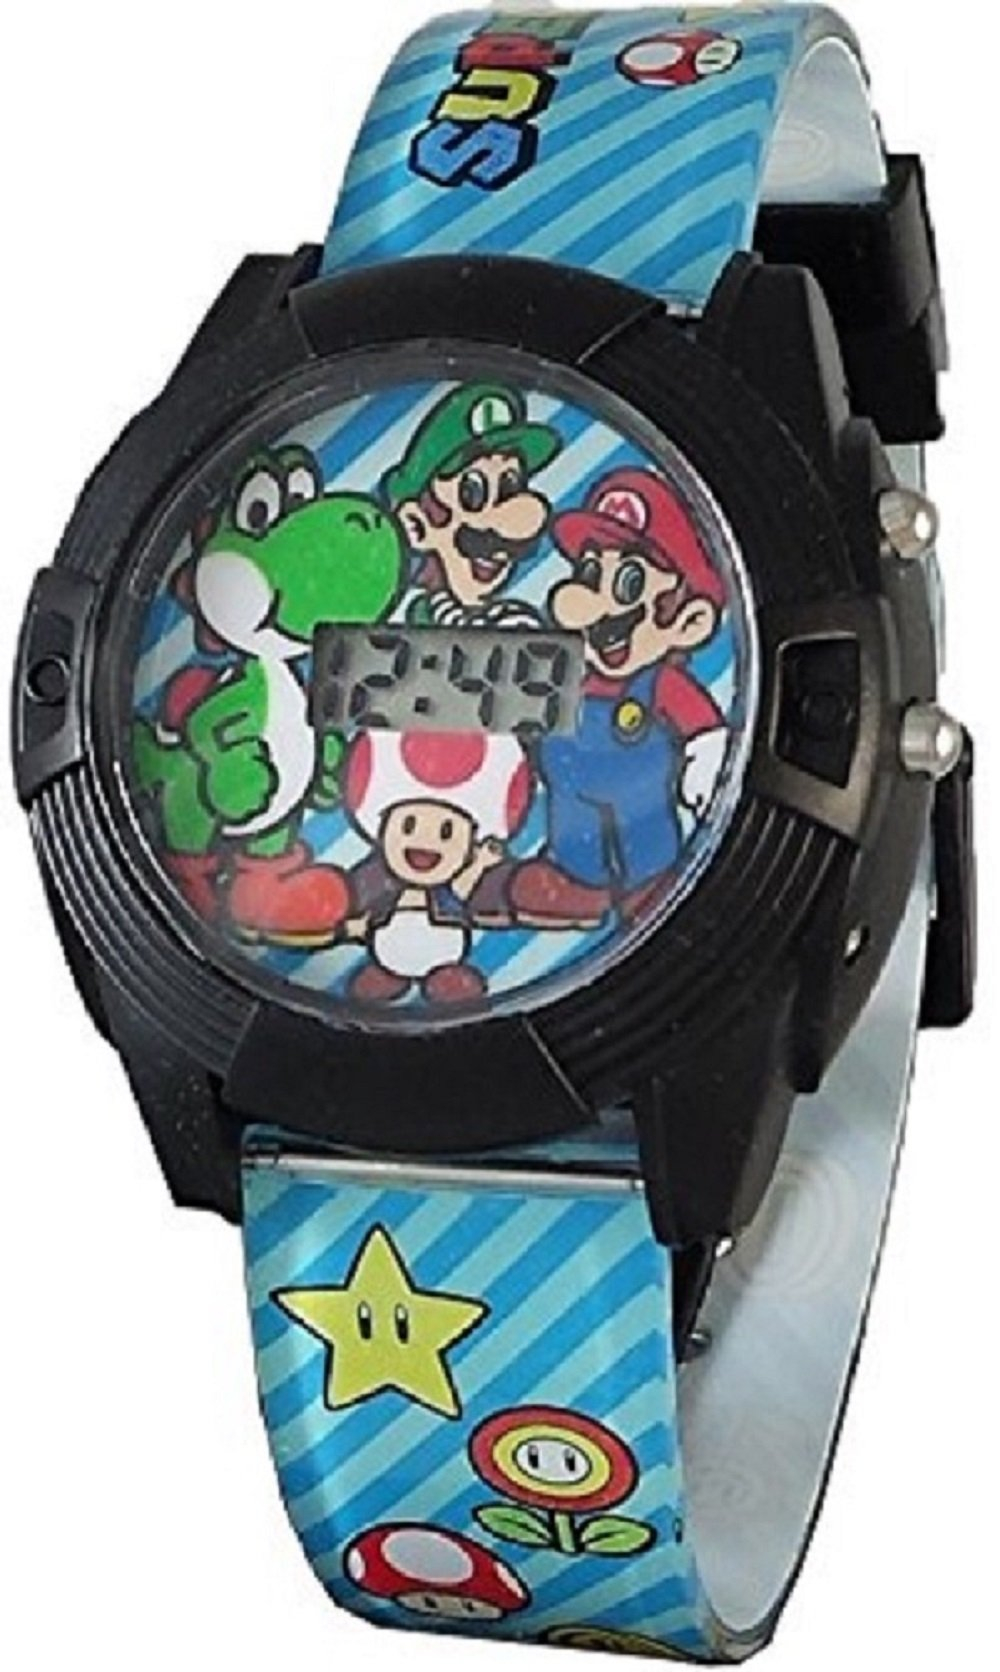 Super Mario Boy's Digital Light Up Watch GSM3015 by Super Mario Brothers